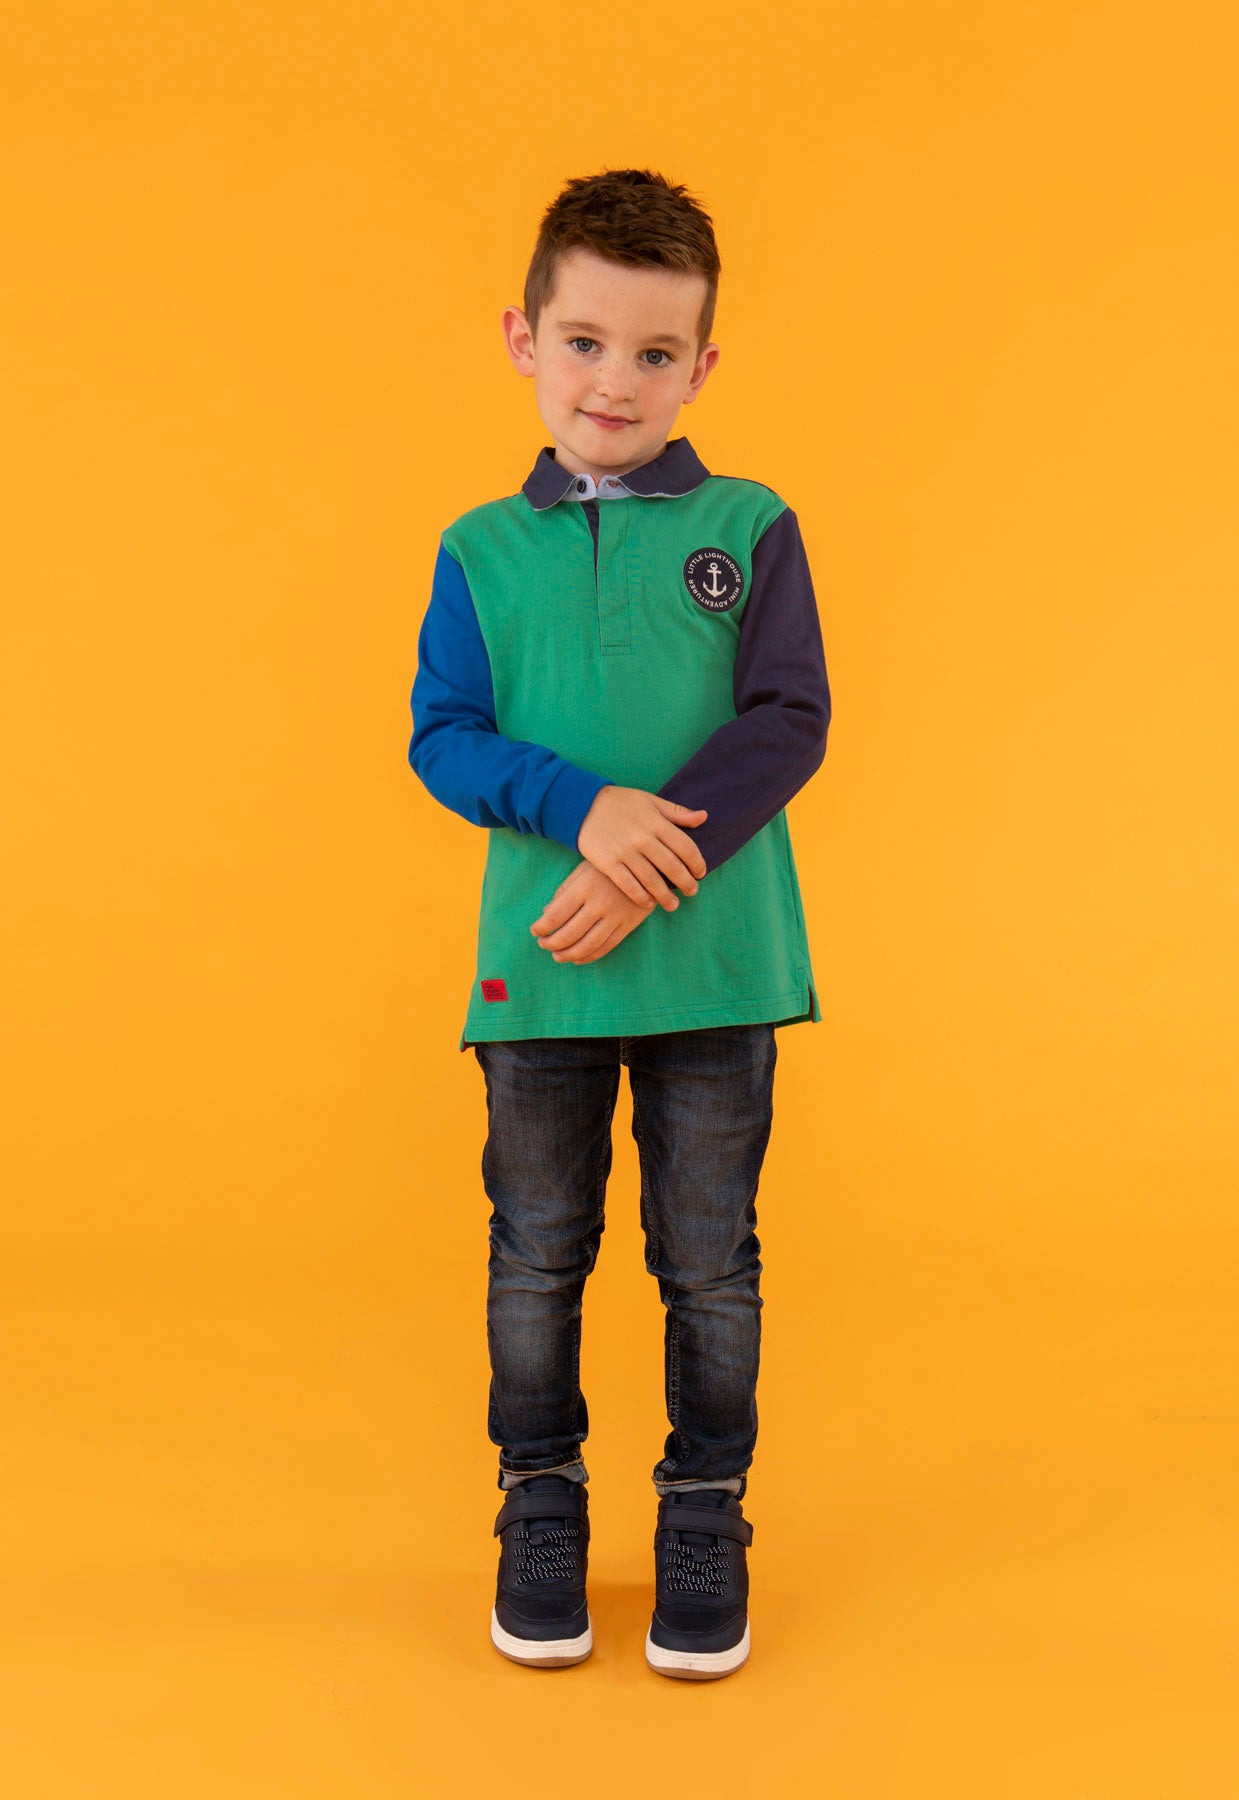 Alfie Top - Green, Boy's Long Sleeve Top | Lighthouse